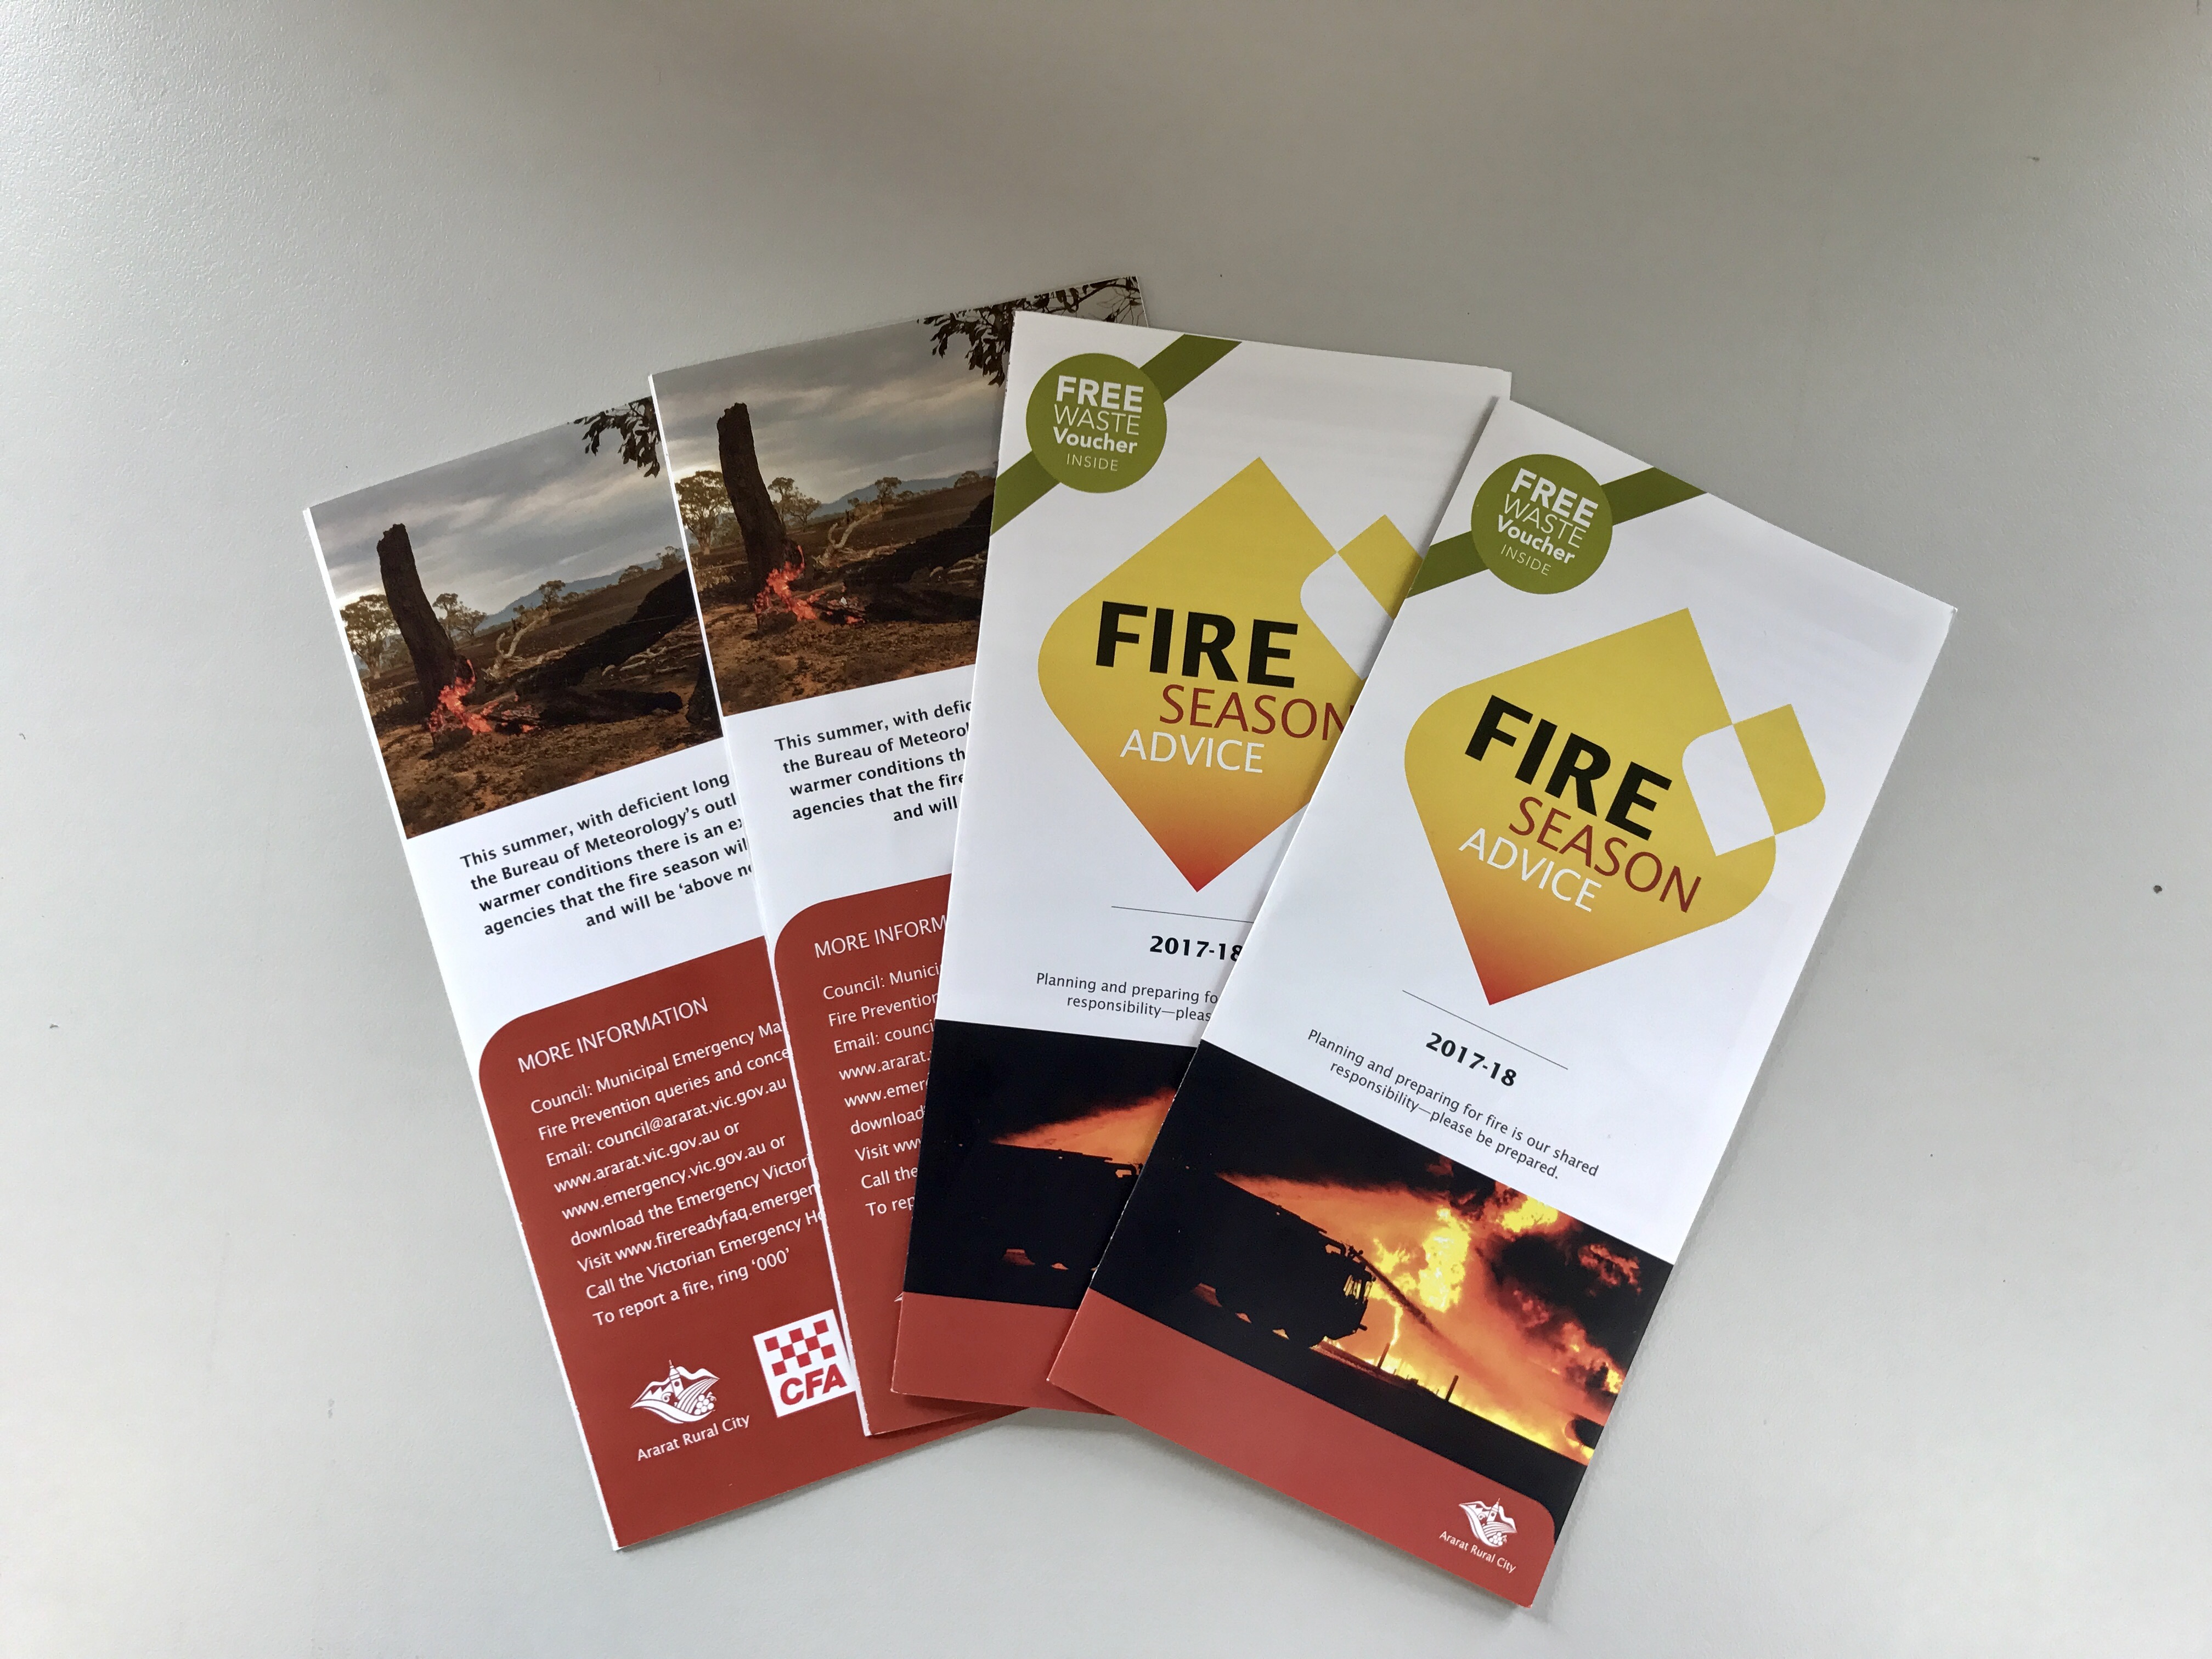 Property inspections ahead of fire season